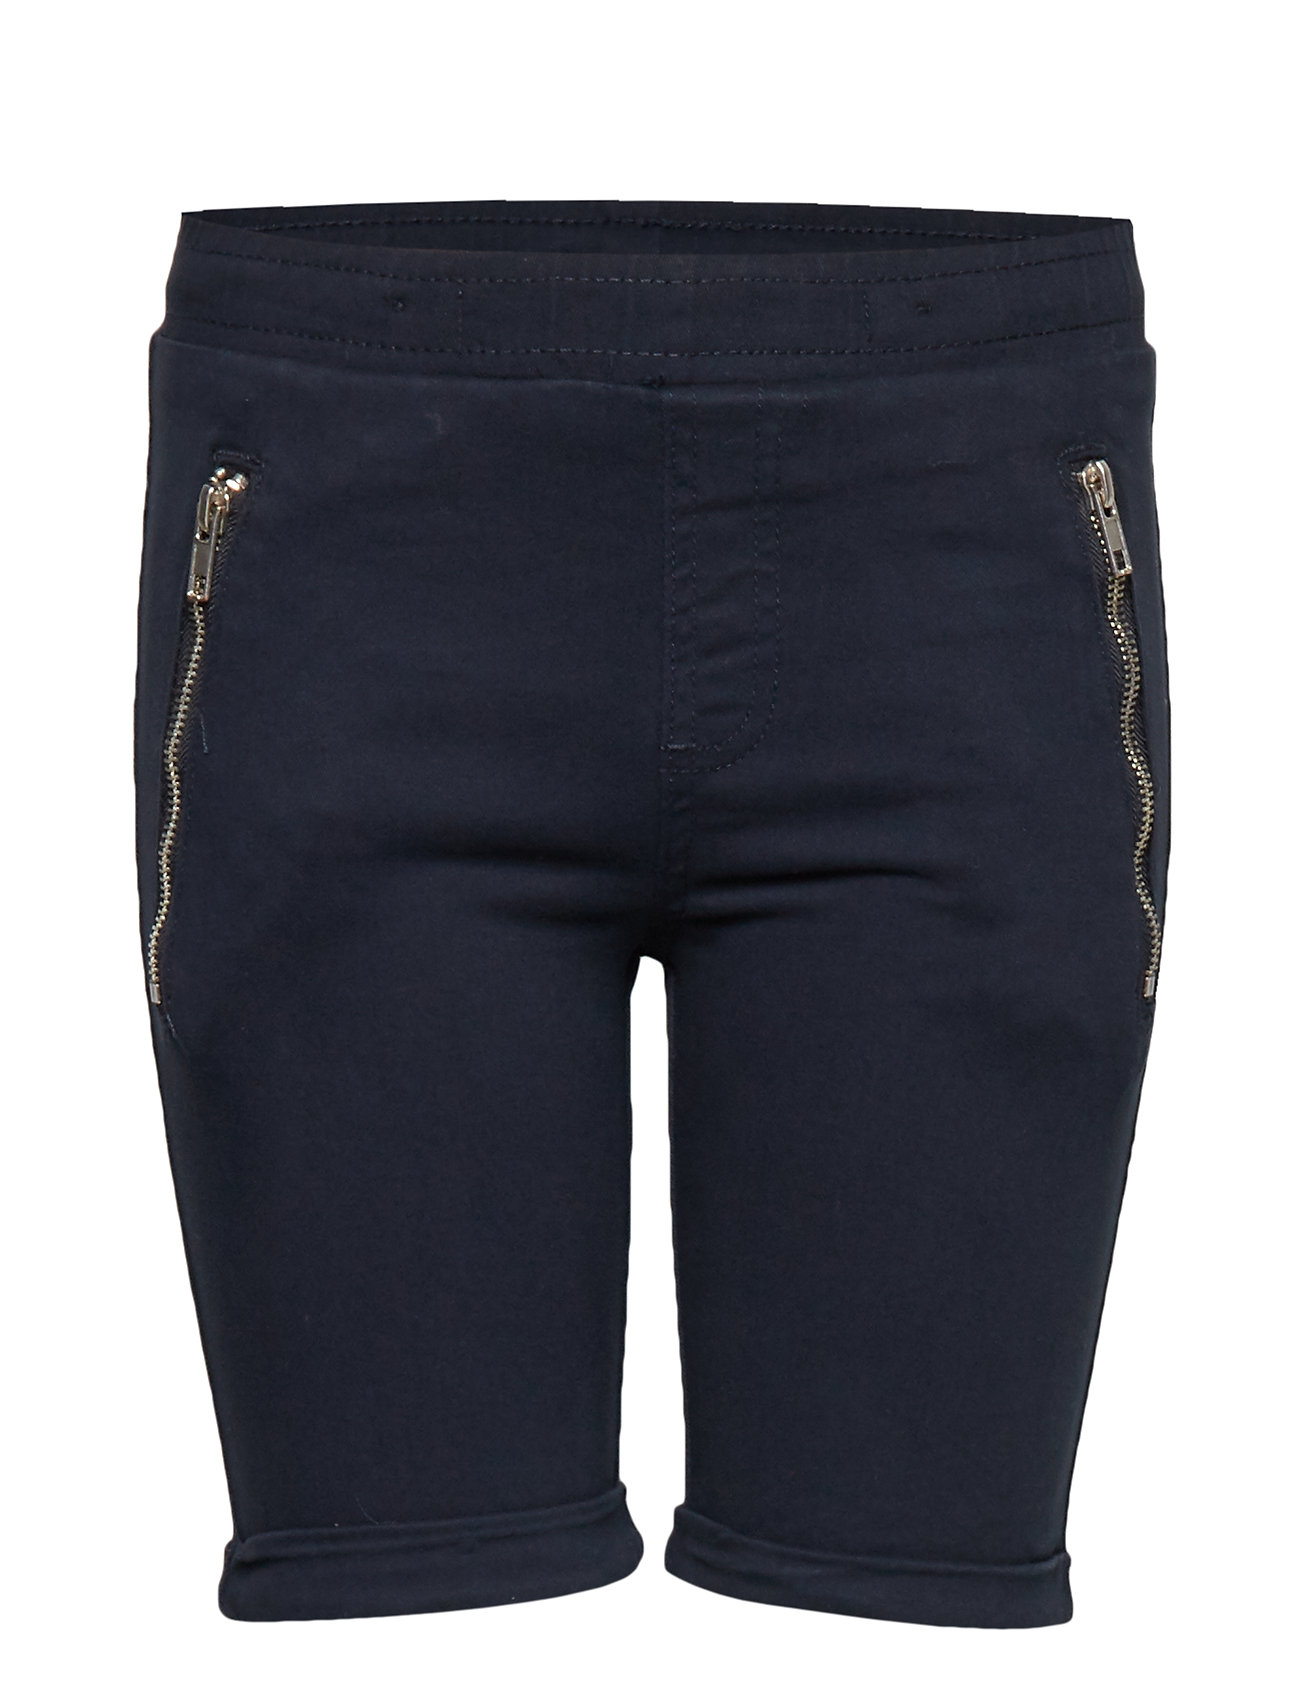 The New KACEY SHORTS - BLACK IRIS